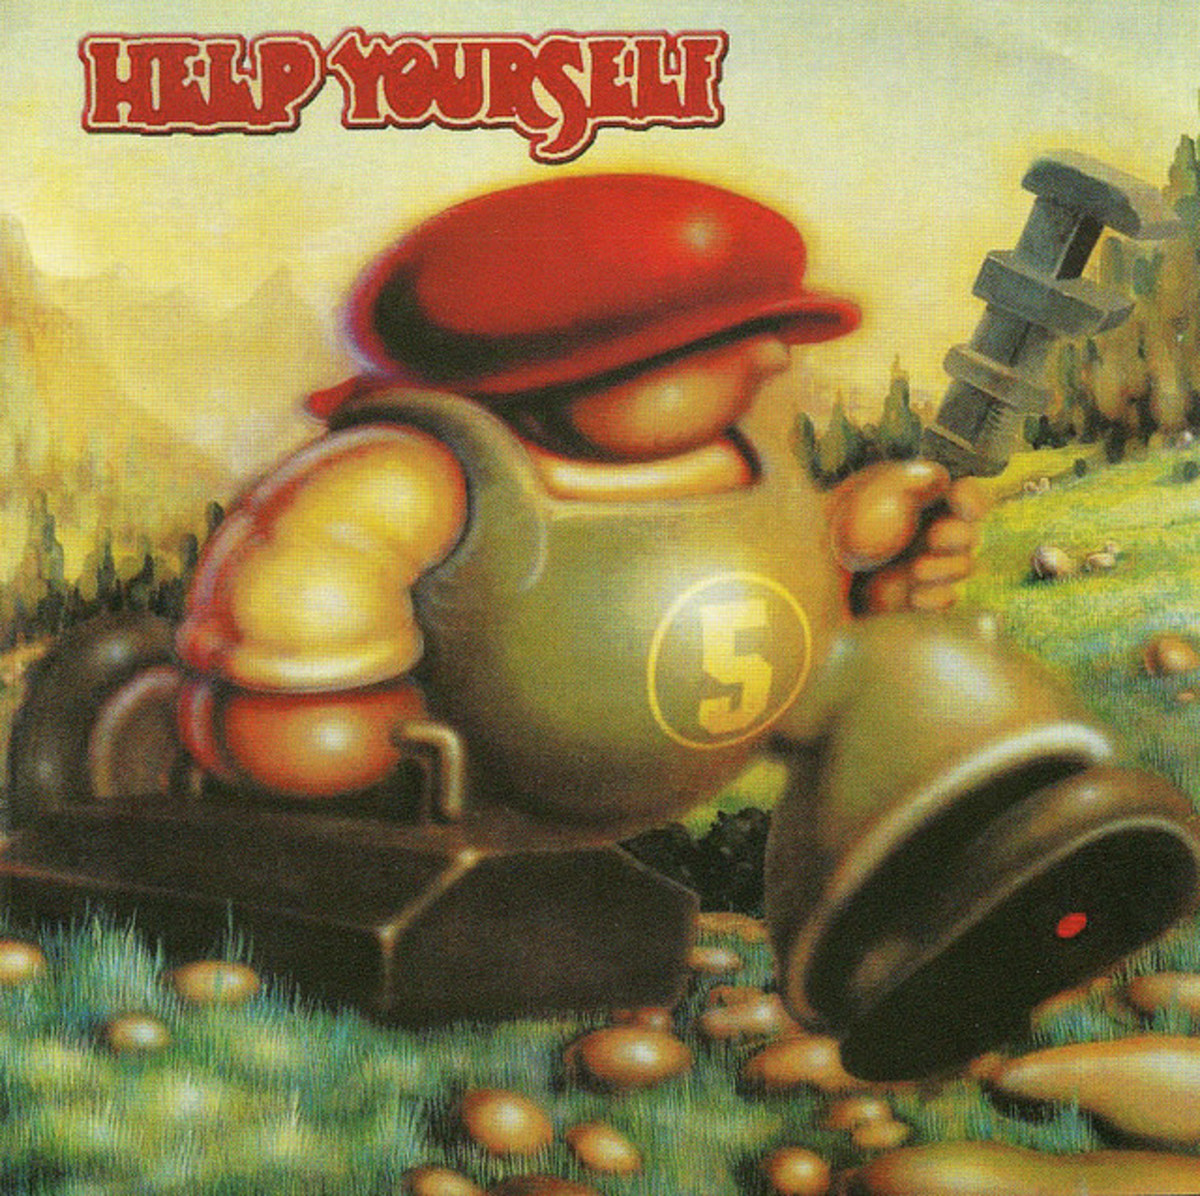 """Help Yourself """"5"""" HUX Records HUX 054 CD Album, UK Pressing (2004) CD Album Cover Art by Rick Griffin"""